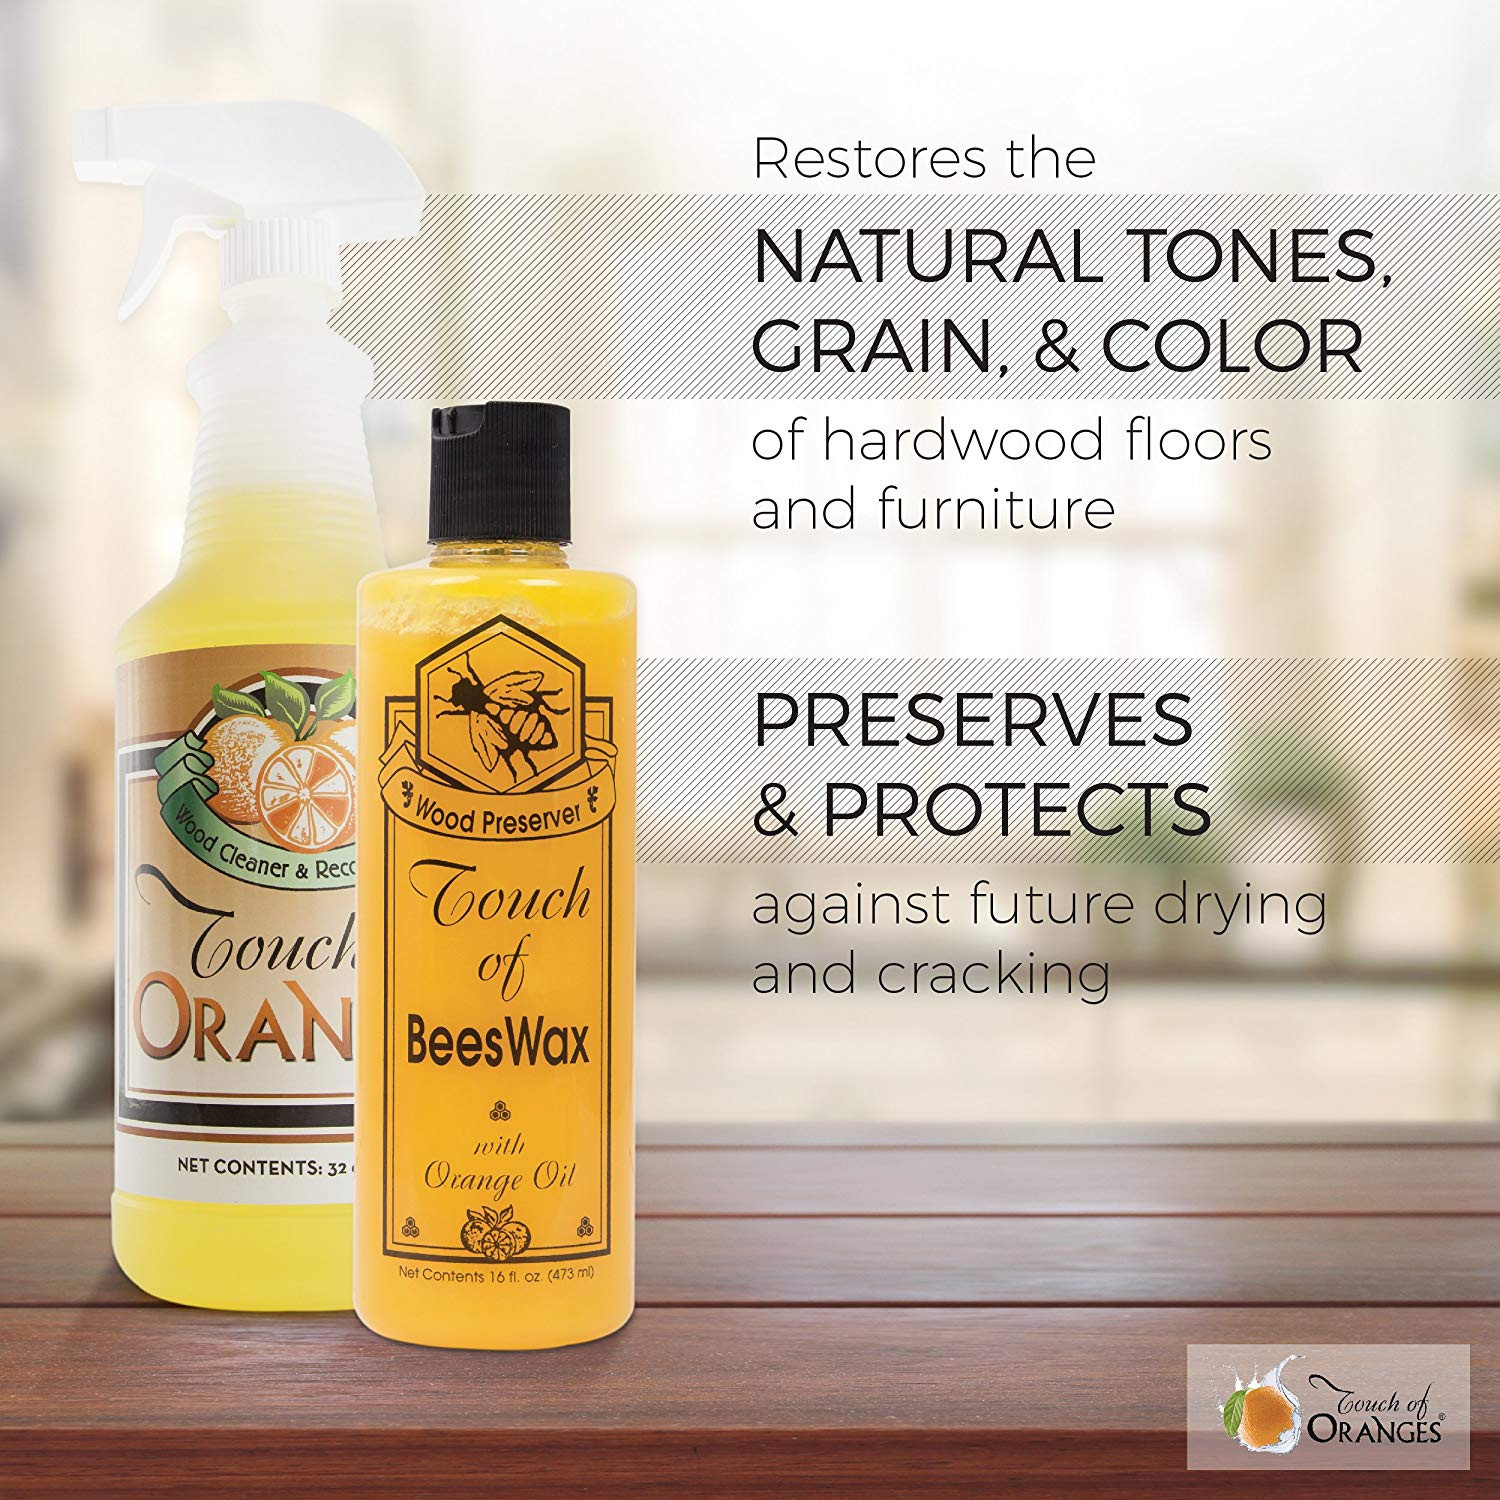 best hardwood floor cleaner canada of orange oil wood cleaner and beeswax furniture polish restore regarding orange oil wood cleaner and beeswax furniture polish restore hardwood floors cabinets tables antiques preserve and protect with touch of oranges